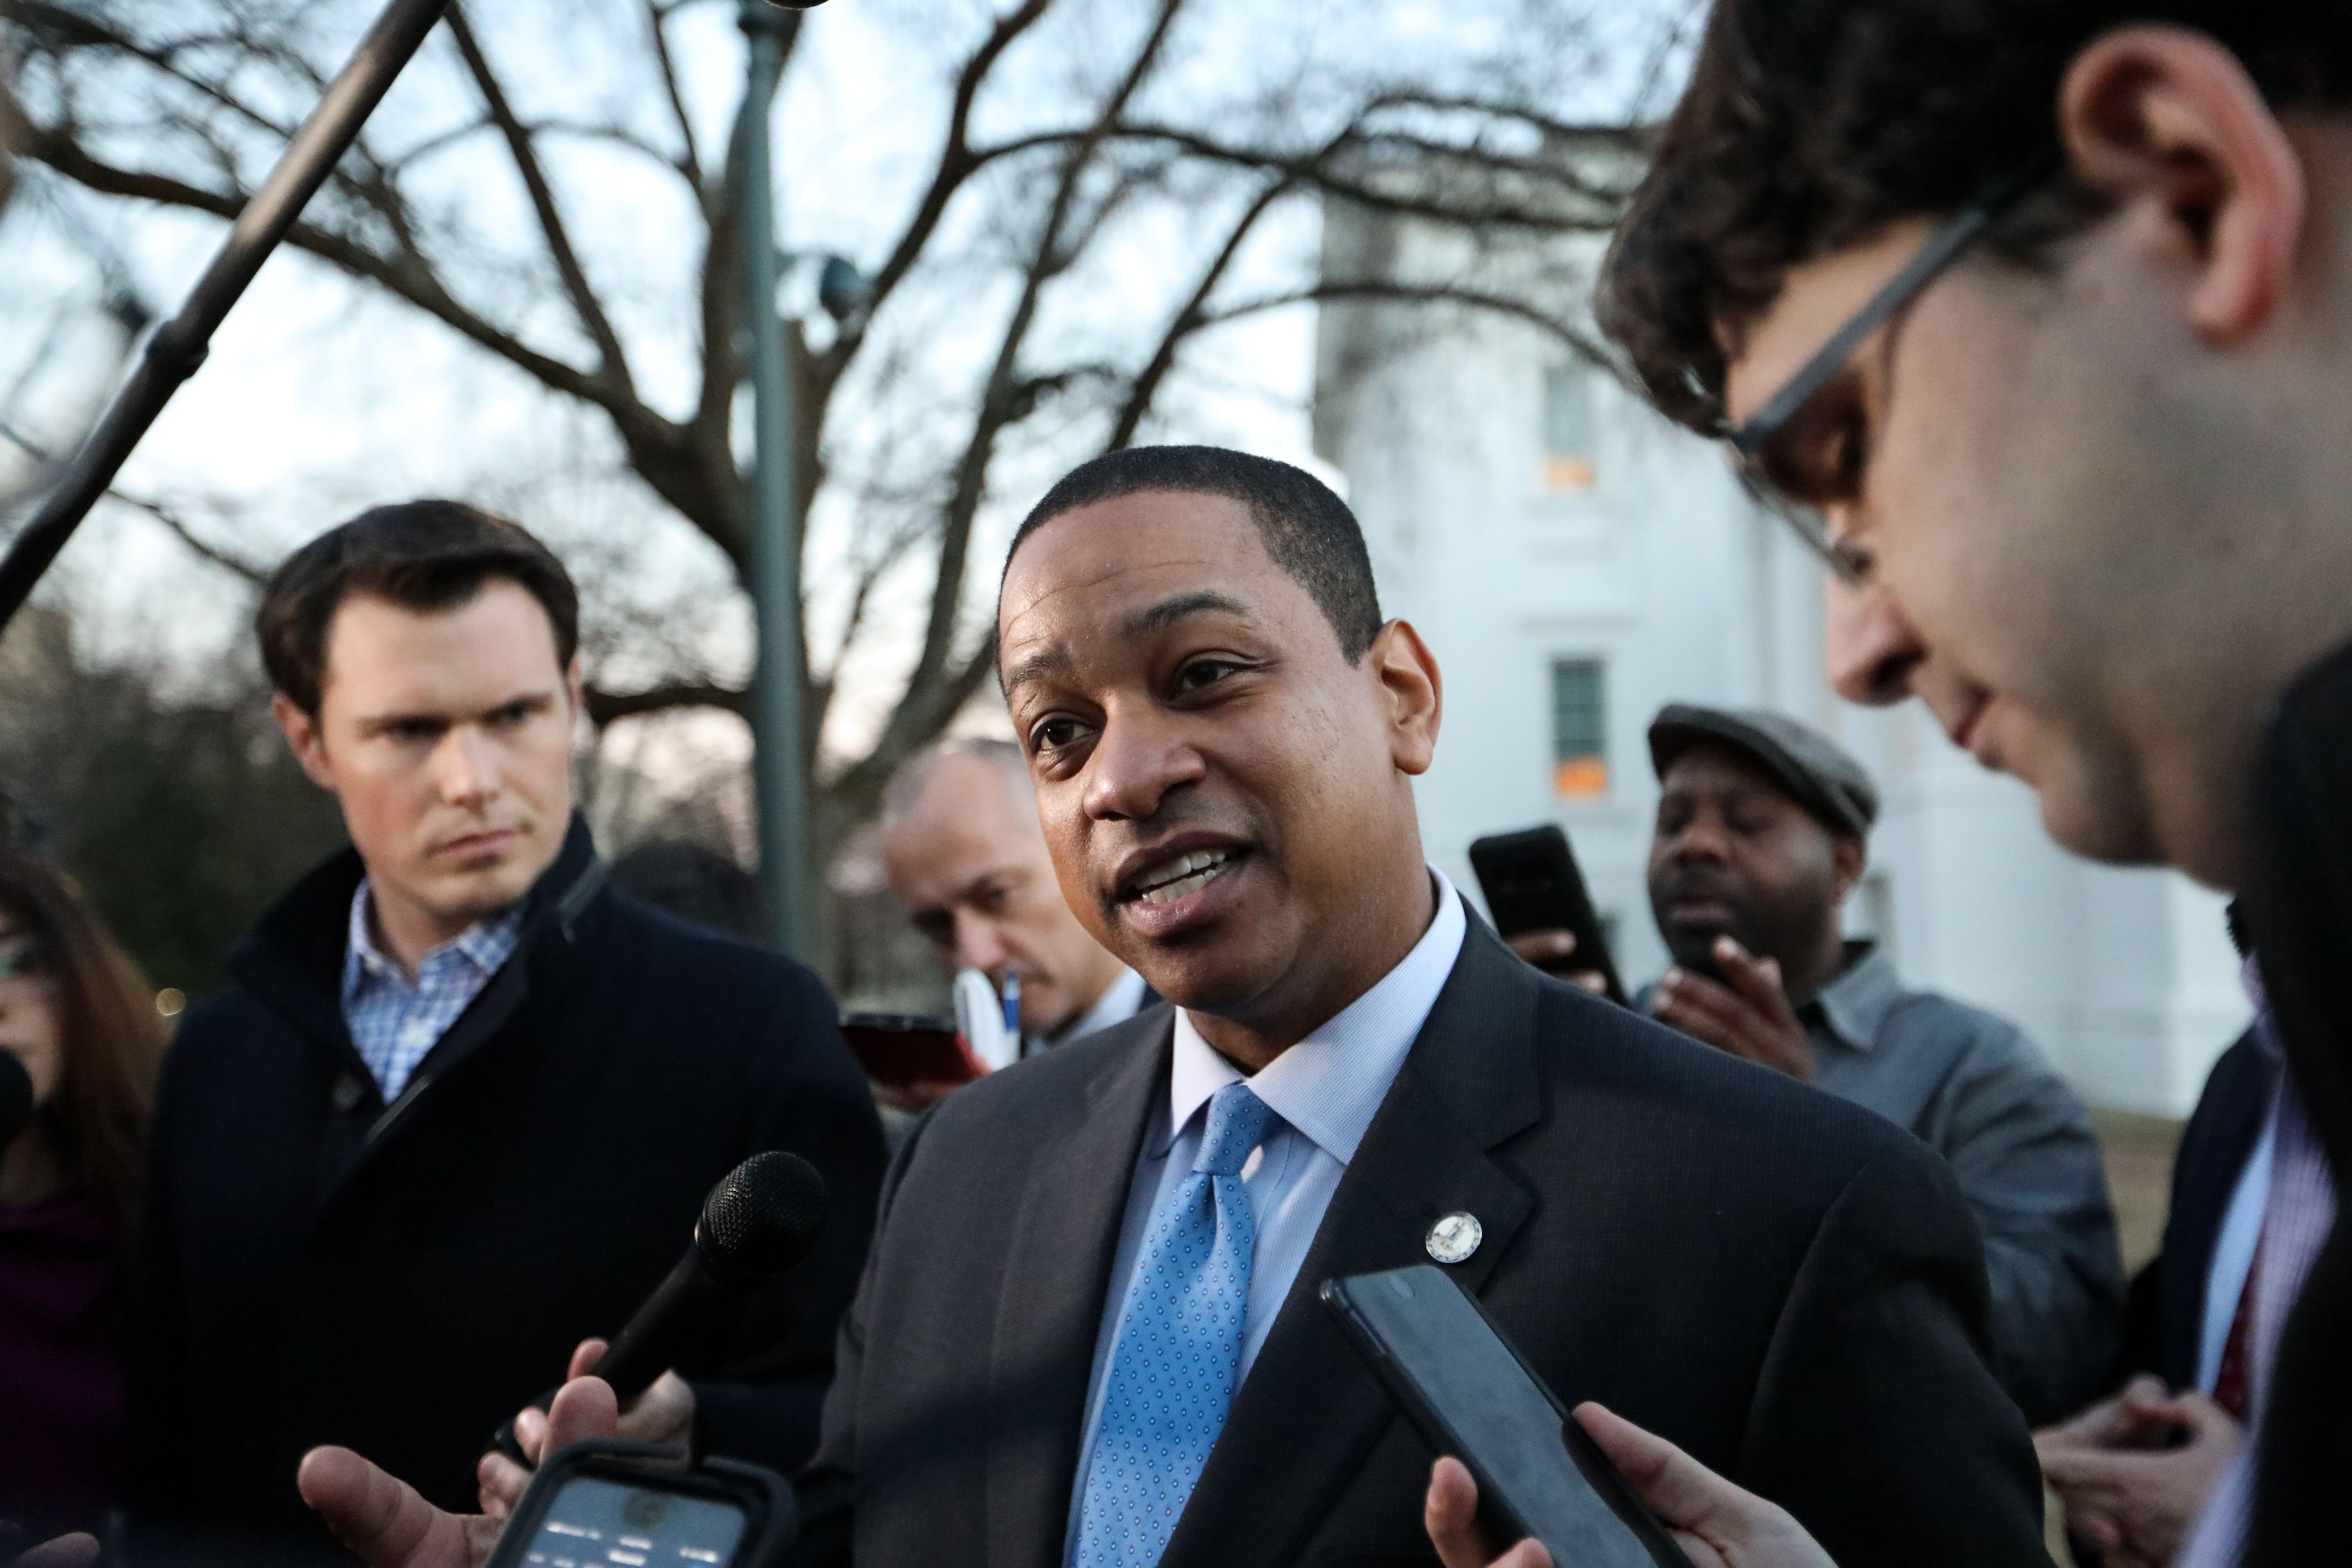 Virginia Lieutenant Governor Justin Fairfax addresses the media about a sexual assualt allegation from 2004 outside of the capital building in dowtown Richmond, February 4, 2019. (LOGAN CYRUS/AFP/Getty Images)